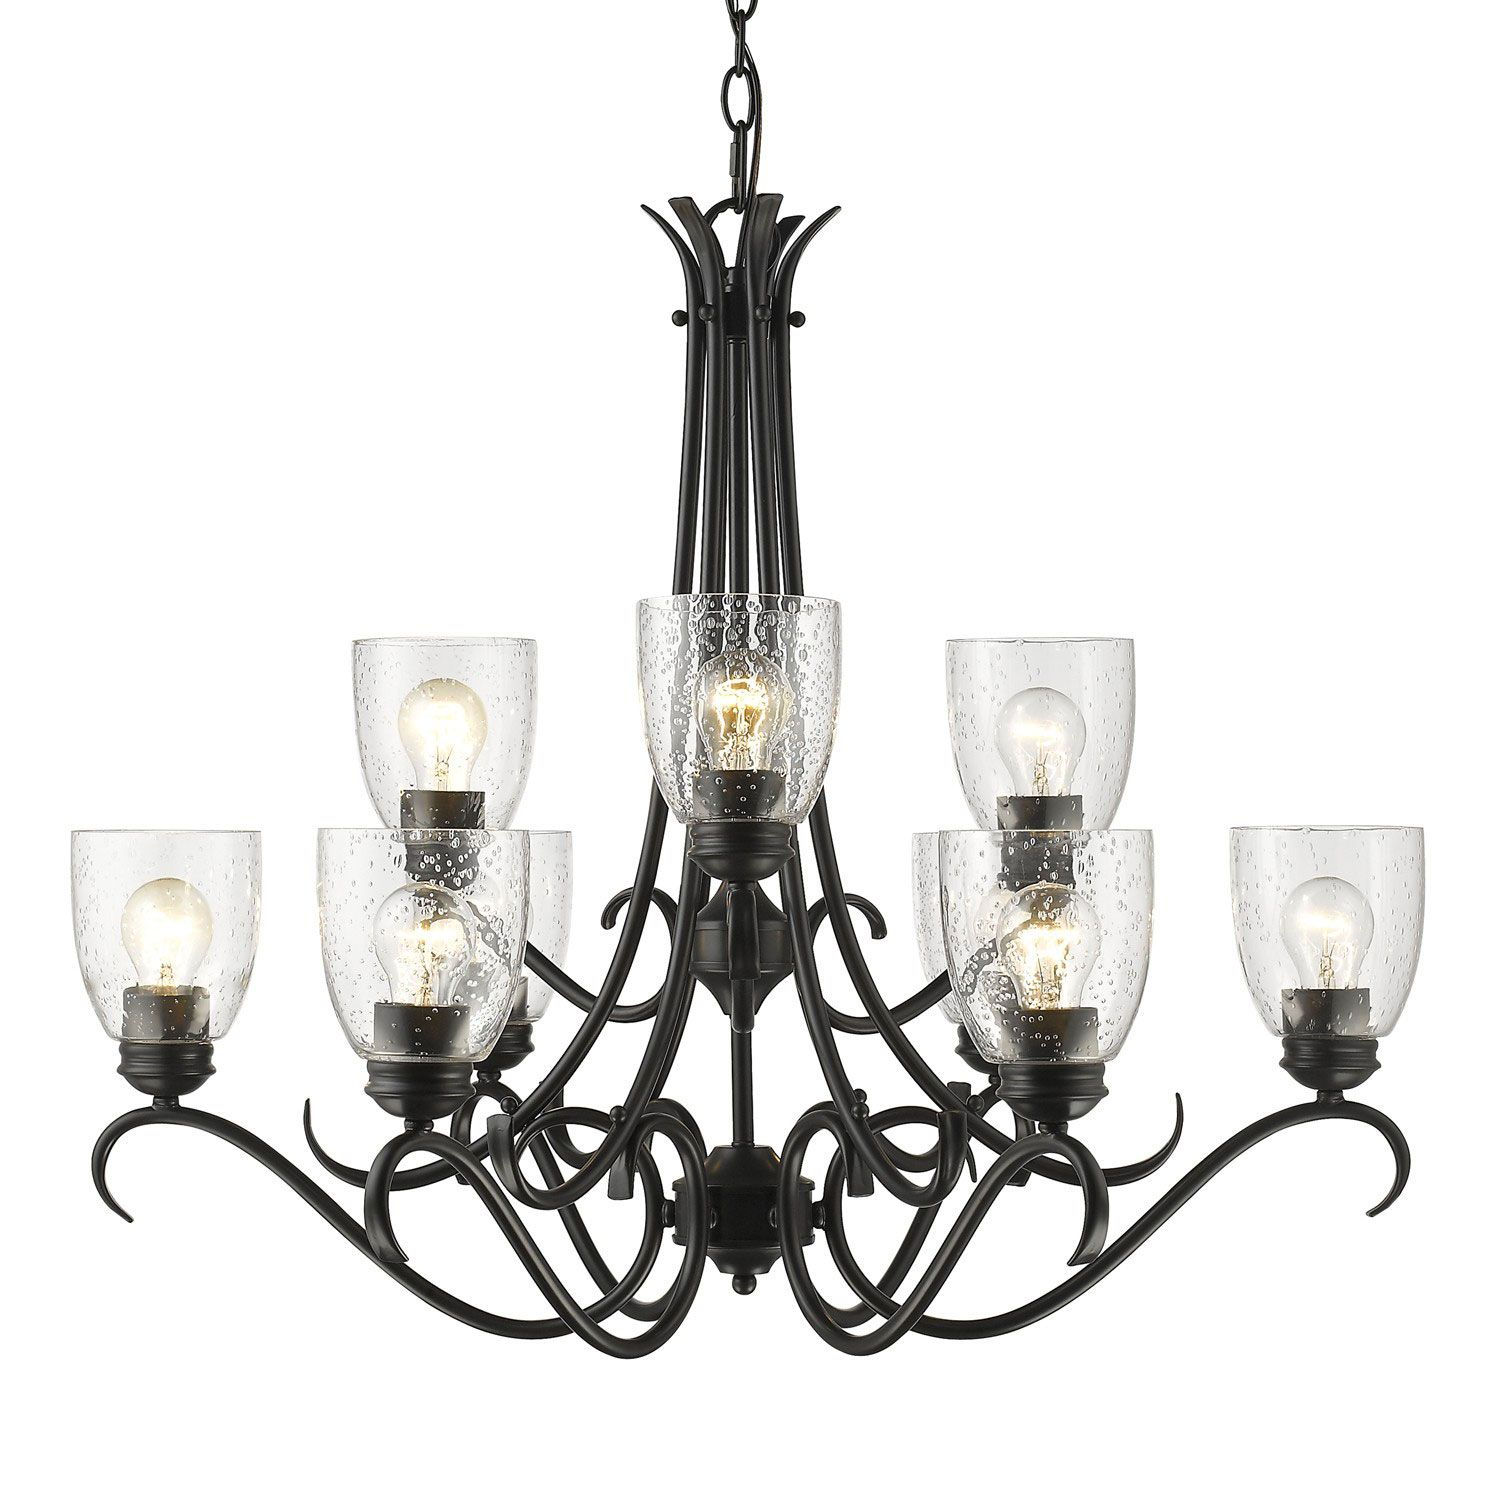 Golden Lighting Parrish Black Nine Light Chandelier with Seeded